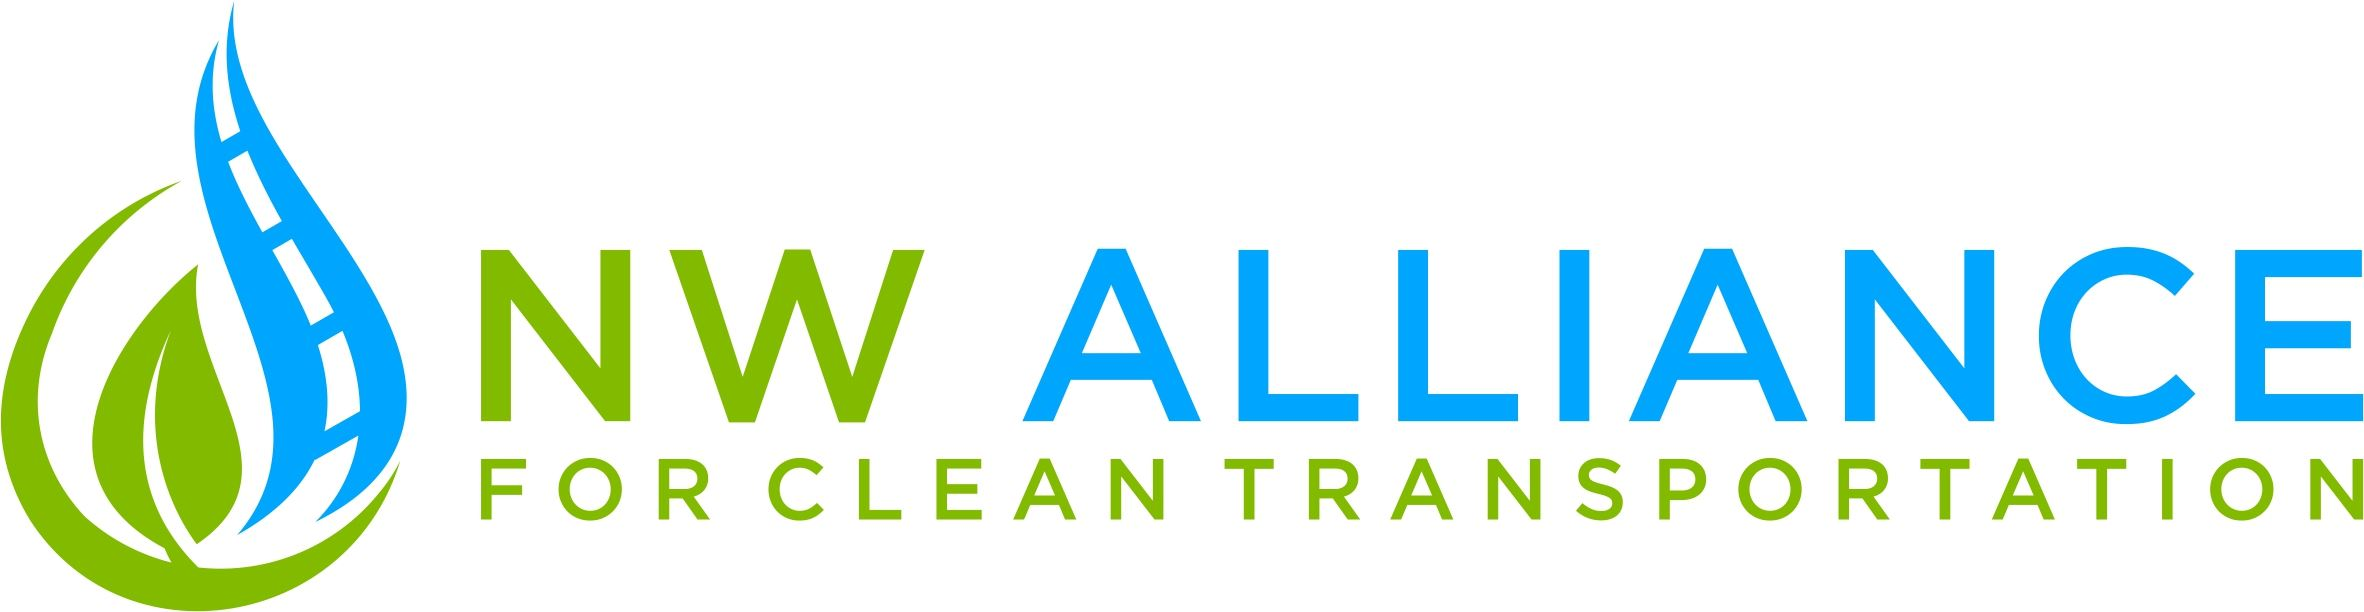 NW_Alliance_CleanTransportation_logo